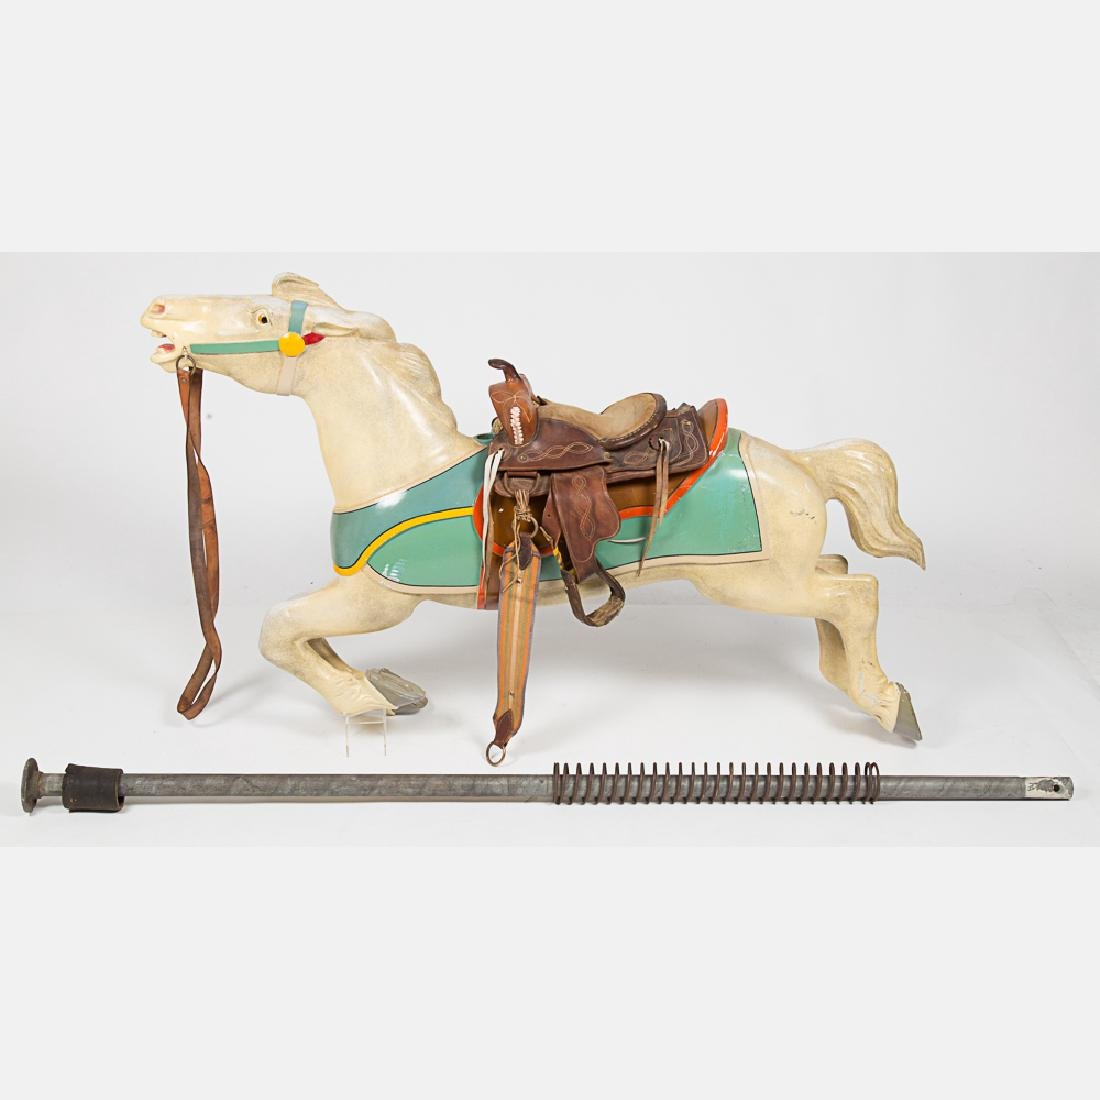 An Antique Painted Aluminum Carousal Horse, 20th